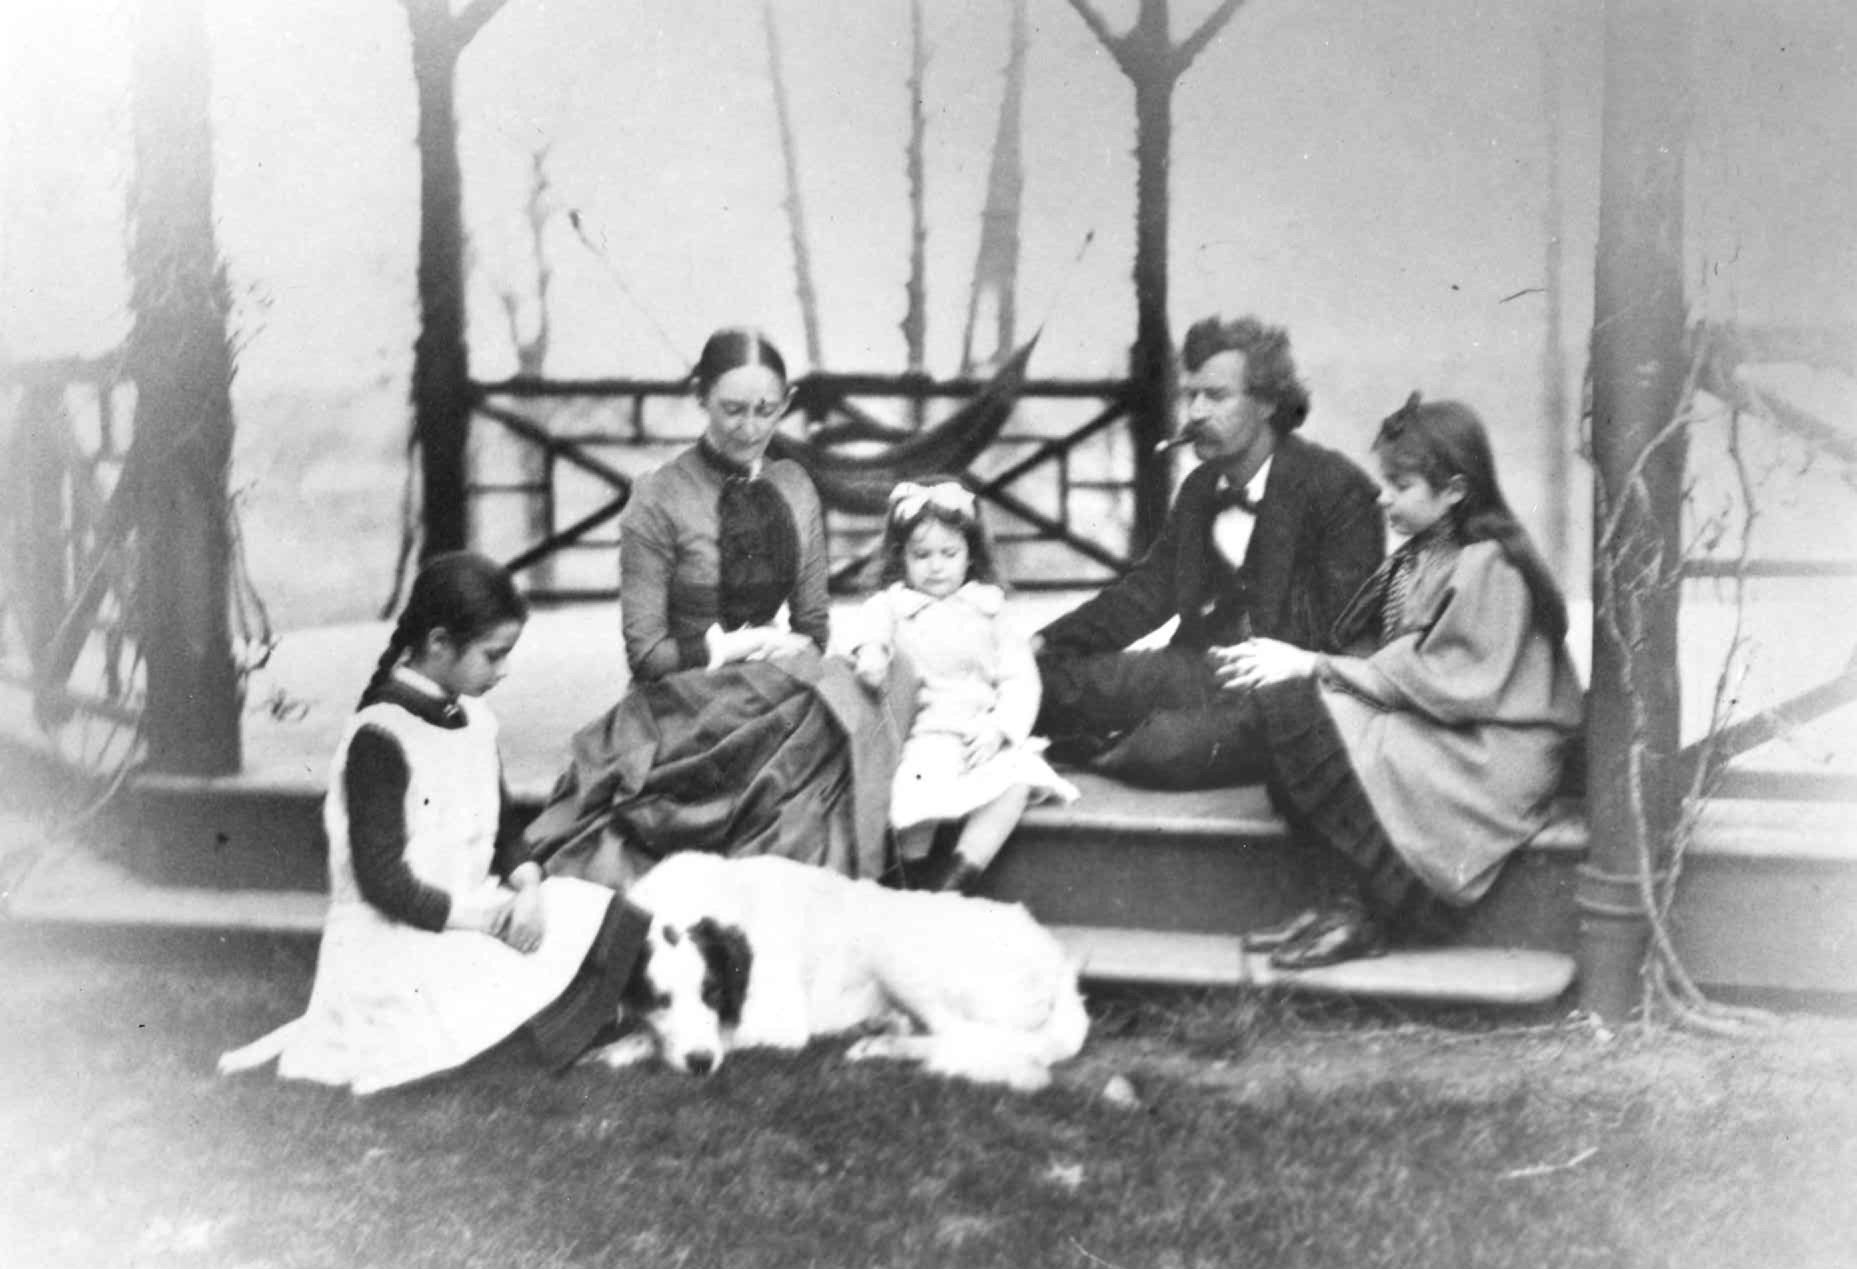 The Clemens family on the porch. From left, Clara, Olivia Langdon Clemens, Jean, Samuel Clemens (Mark Twain) and Susy. Sam and Olivia Clemens lived in Buffalo for 18 months starting in 1870.